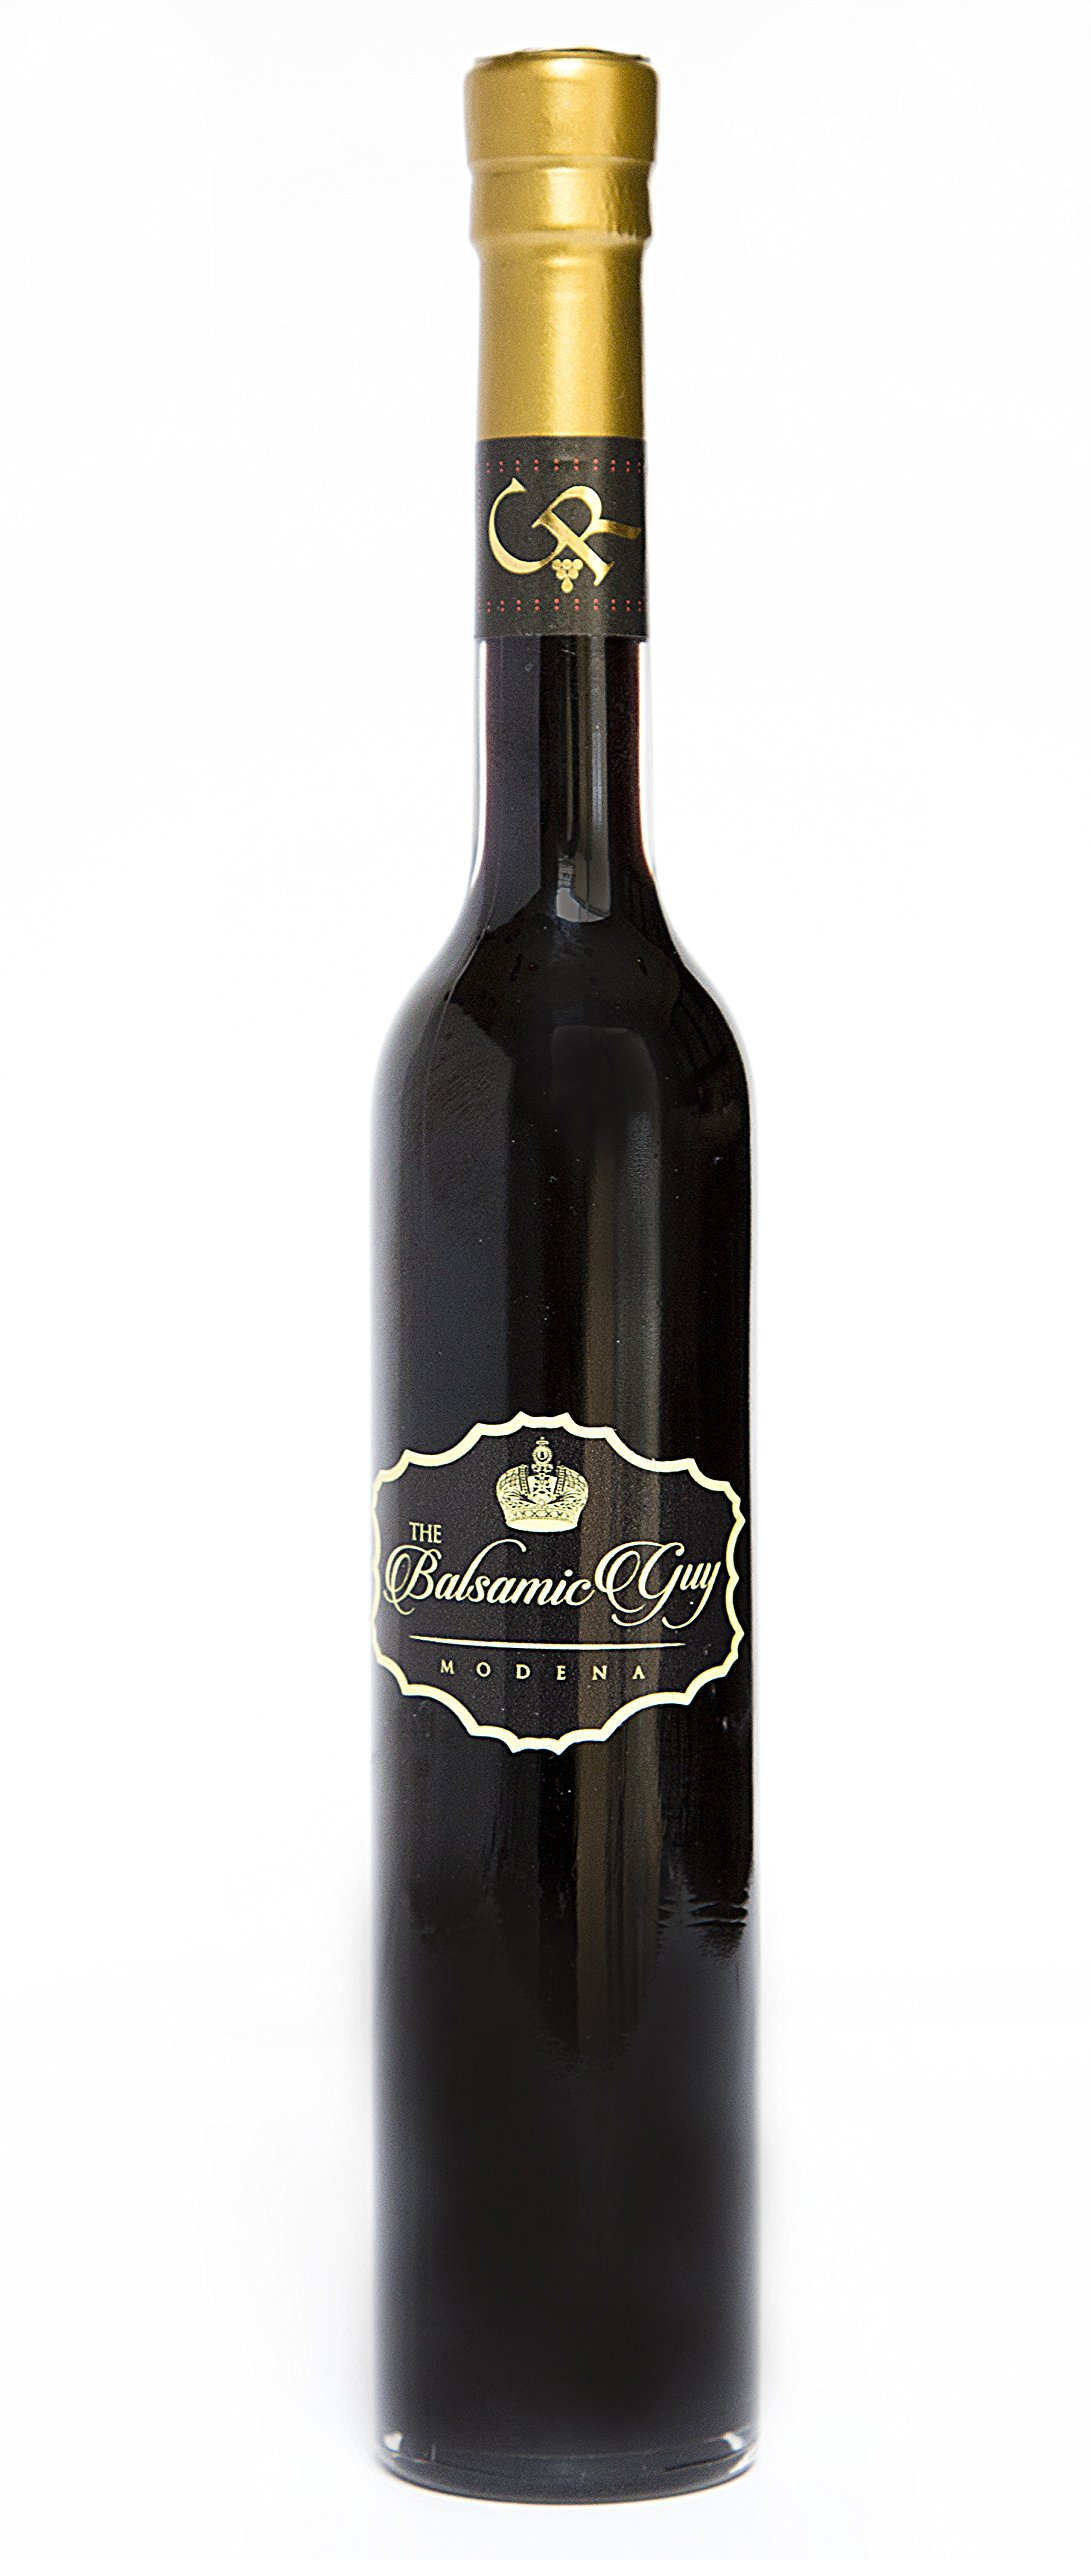 Balsamic Vinegar from Modena. All Natural. No Preservatives. 100 ml bottle. On Sale Now.